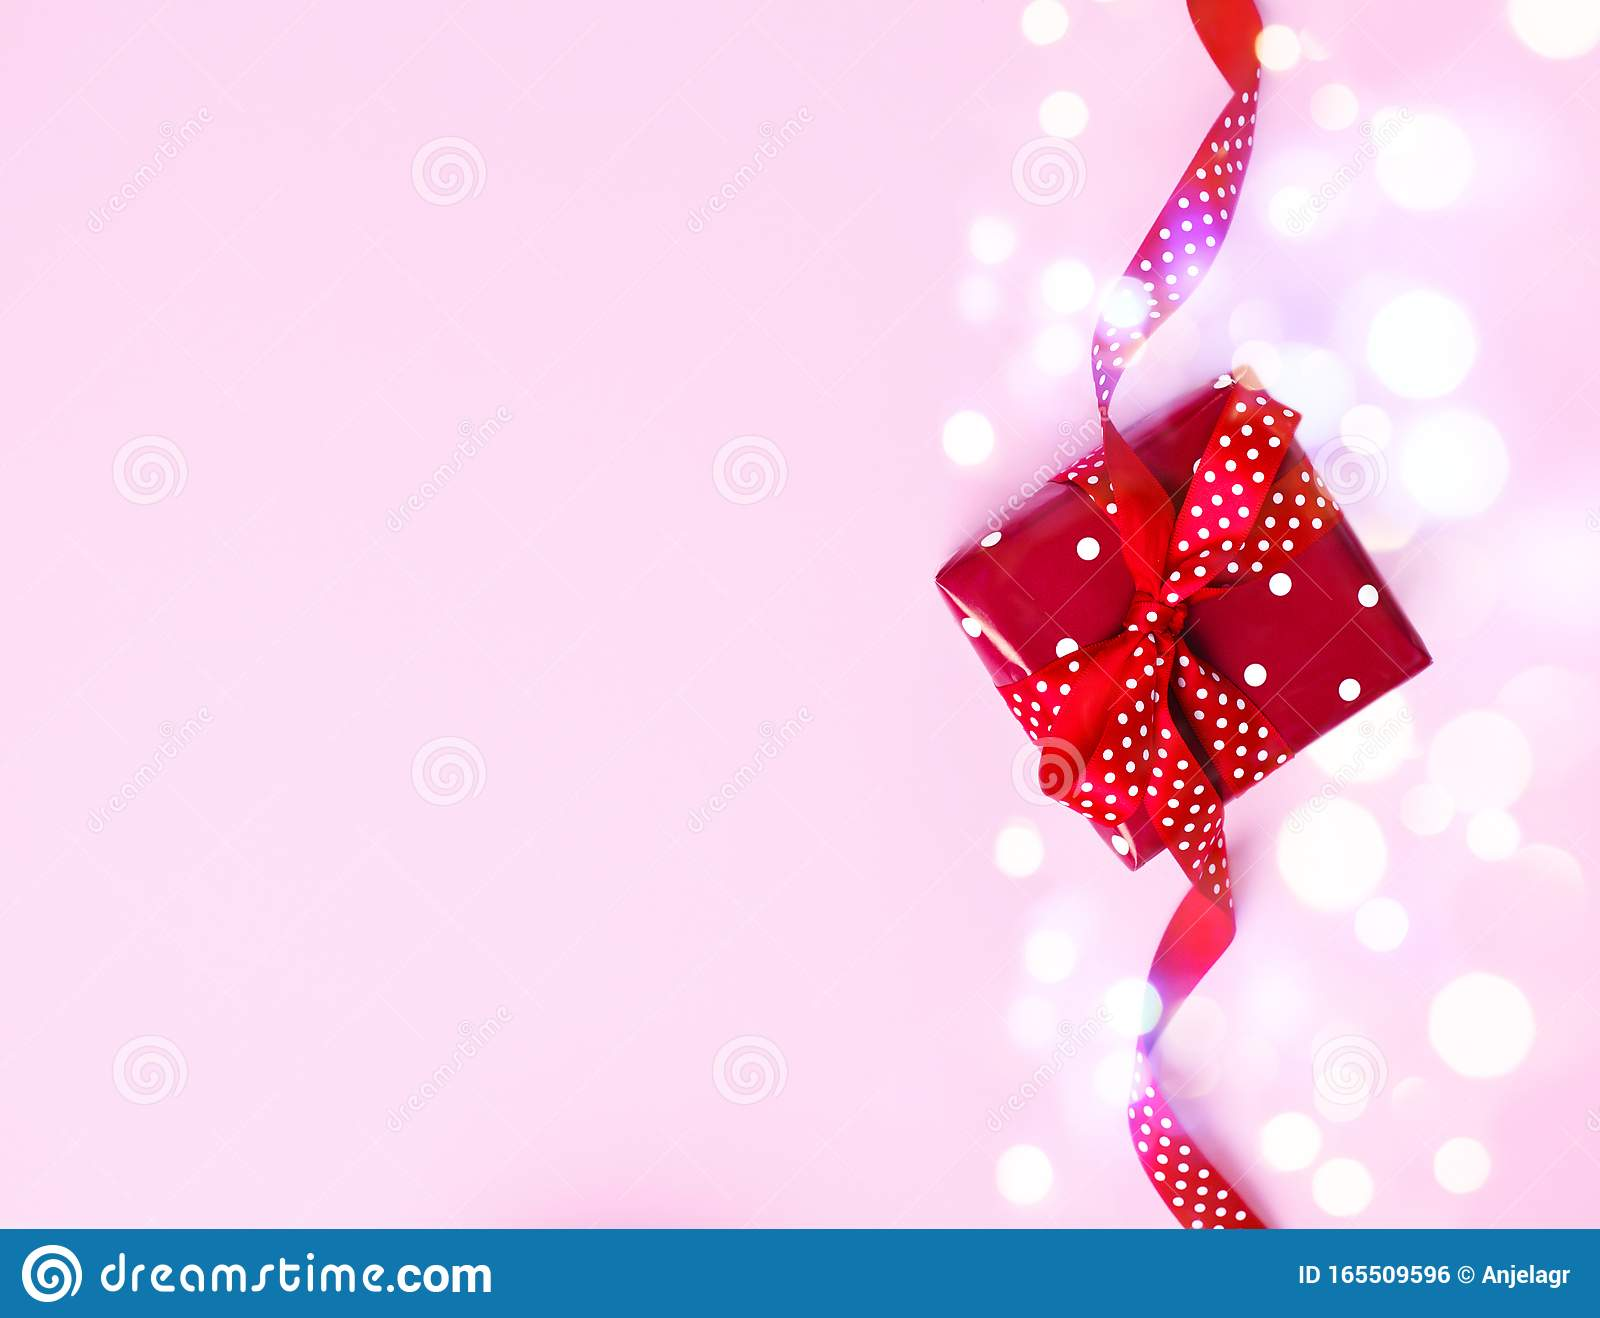 Red Gift Box On Pink Background Presents For Christmas Valentine Day Birthday Mother S Day Stock Photo Image Of Copy Bright 165509596